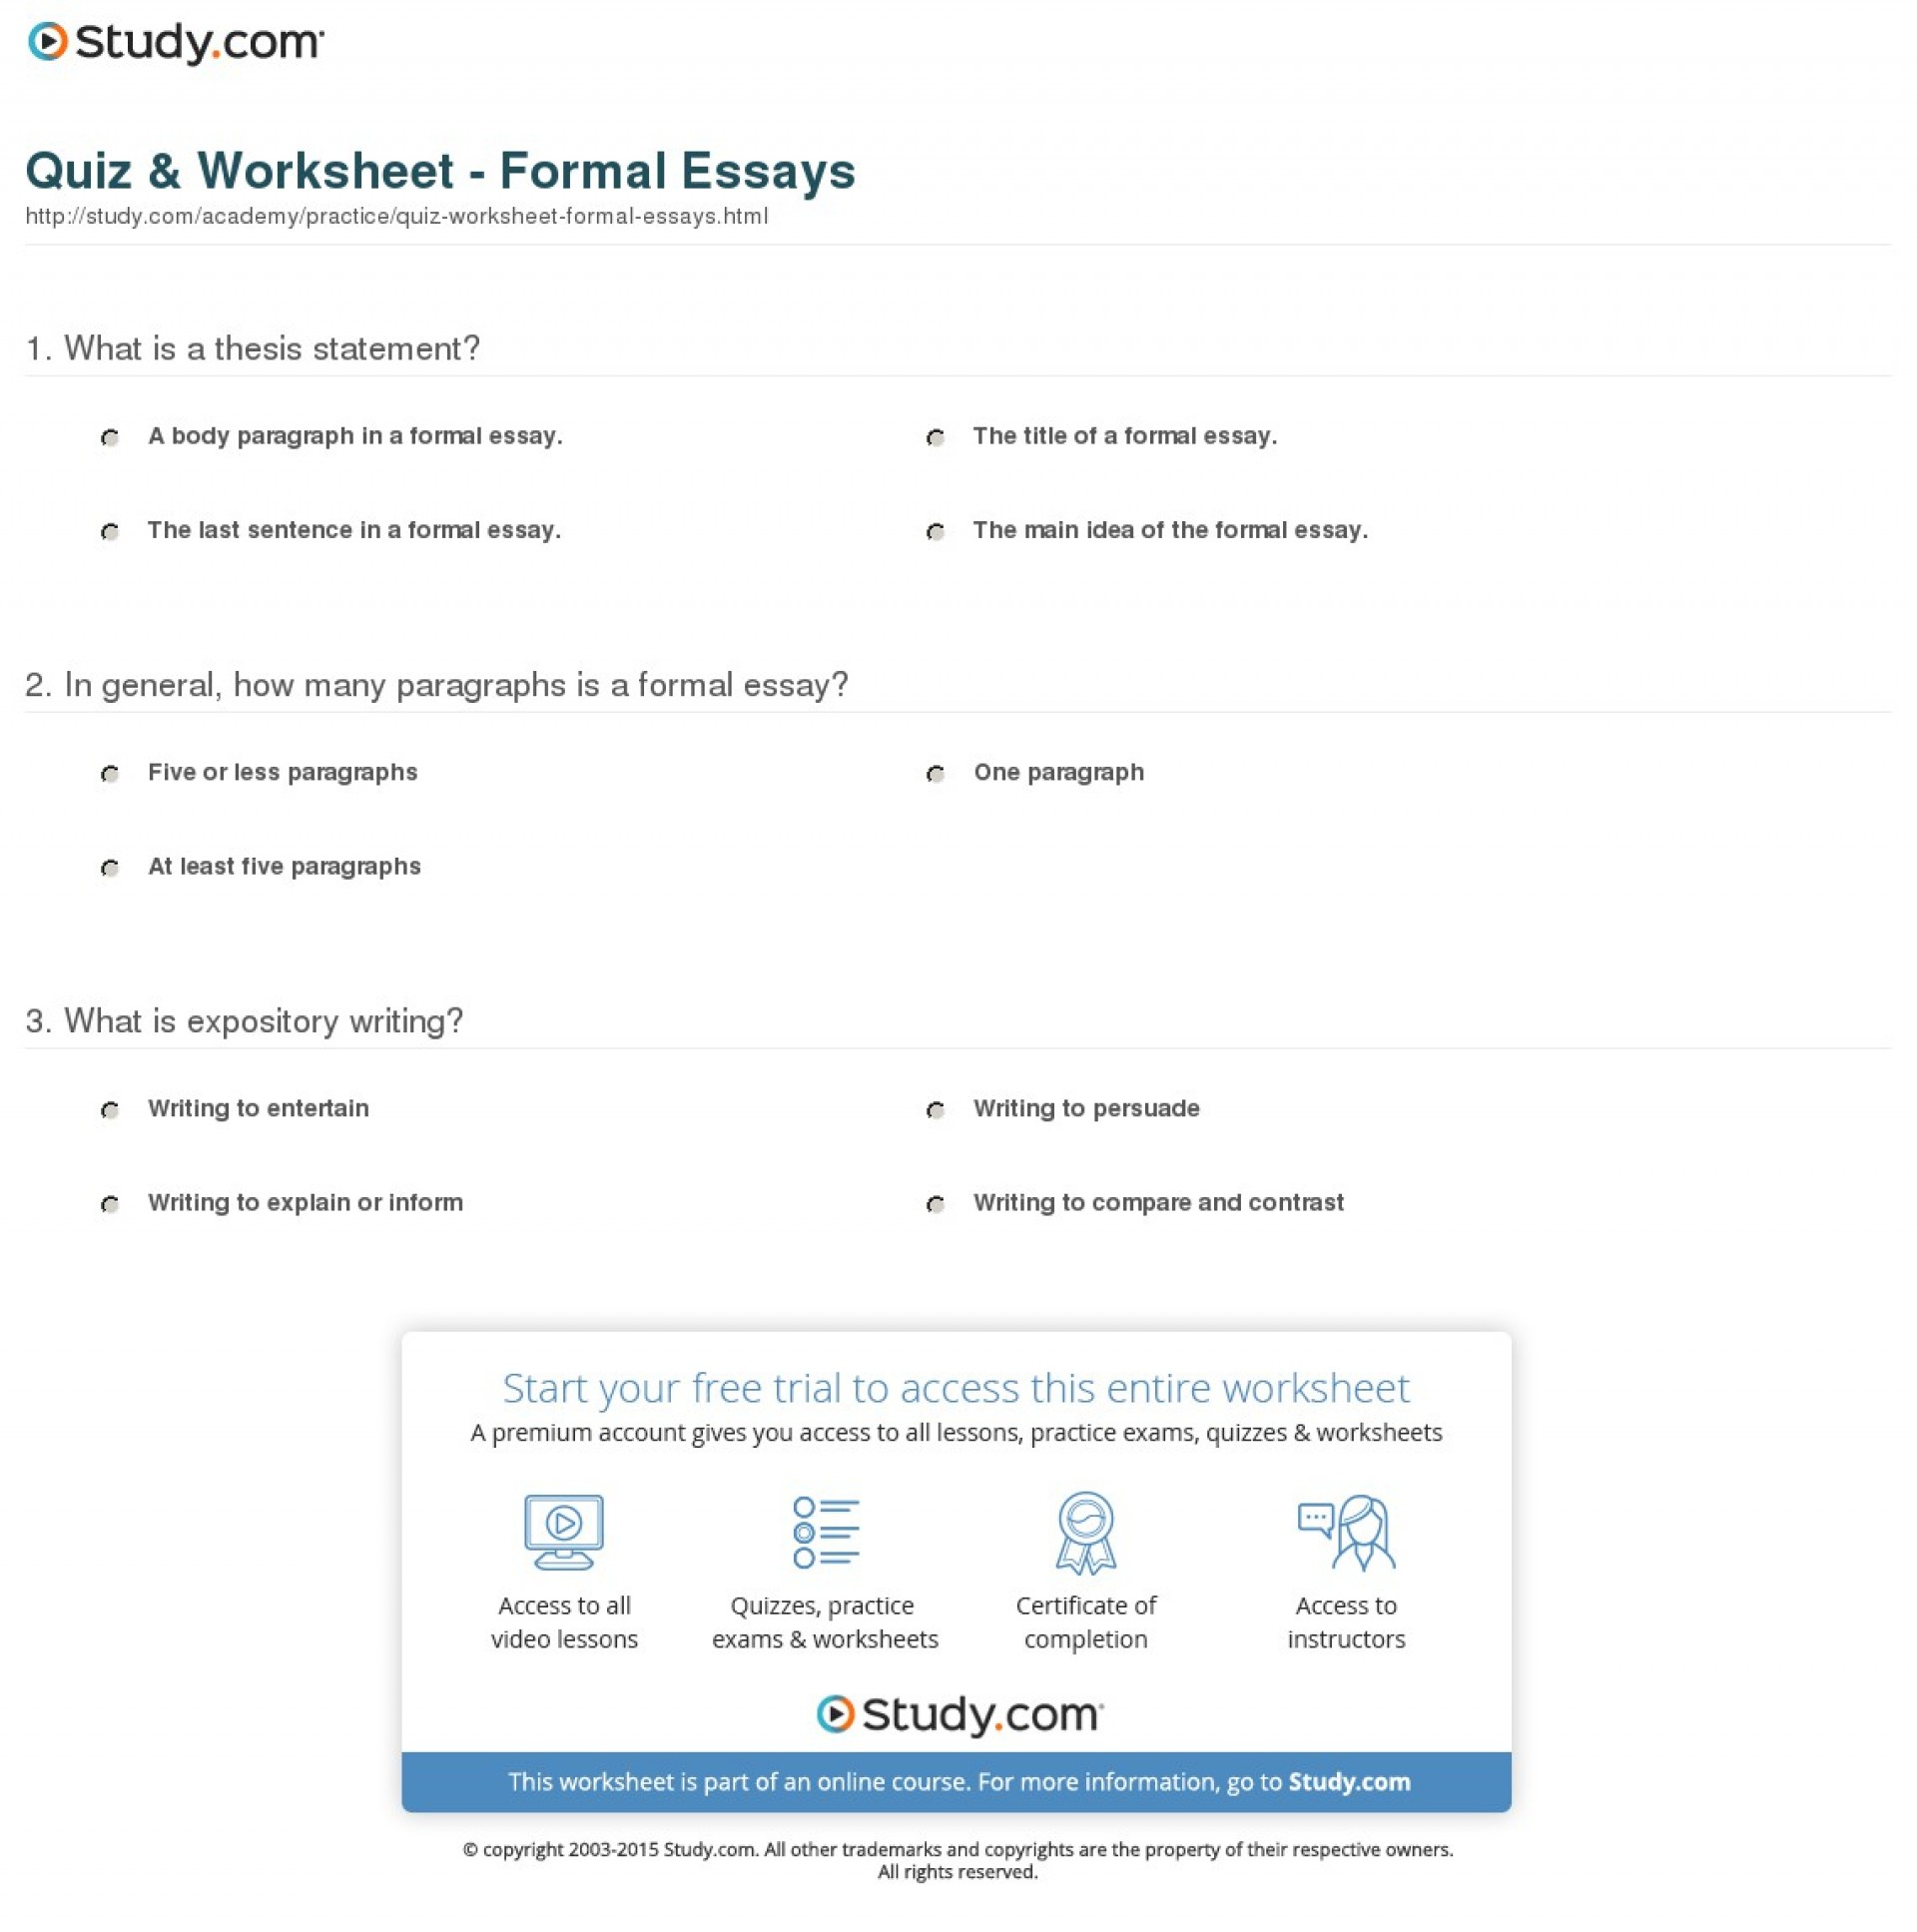 023 Essay Example Quiz Worksheet Formal Essays How Many Paragraphsre In Formidable Paragraphs Are A Argumentative Thematic Synthesis 1920